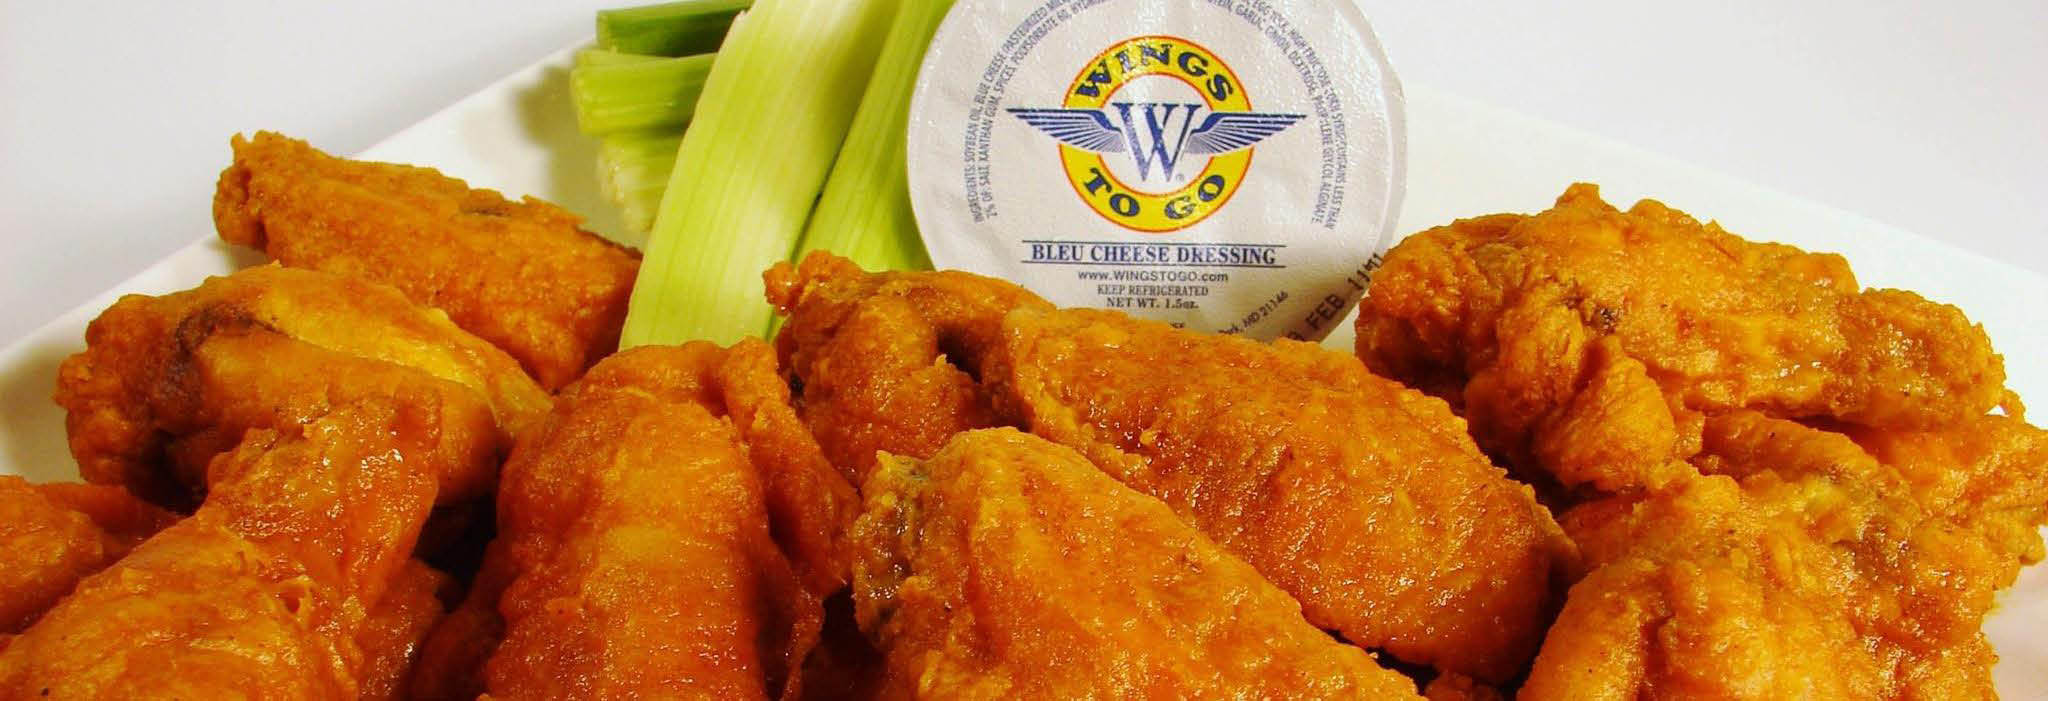 wings to go-wings,chicken wings,fries,bleu cheese,boneless wings, wings discount, take out